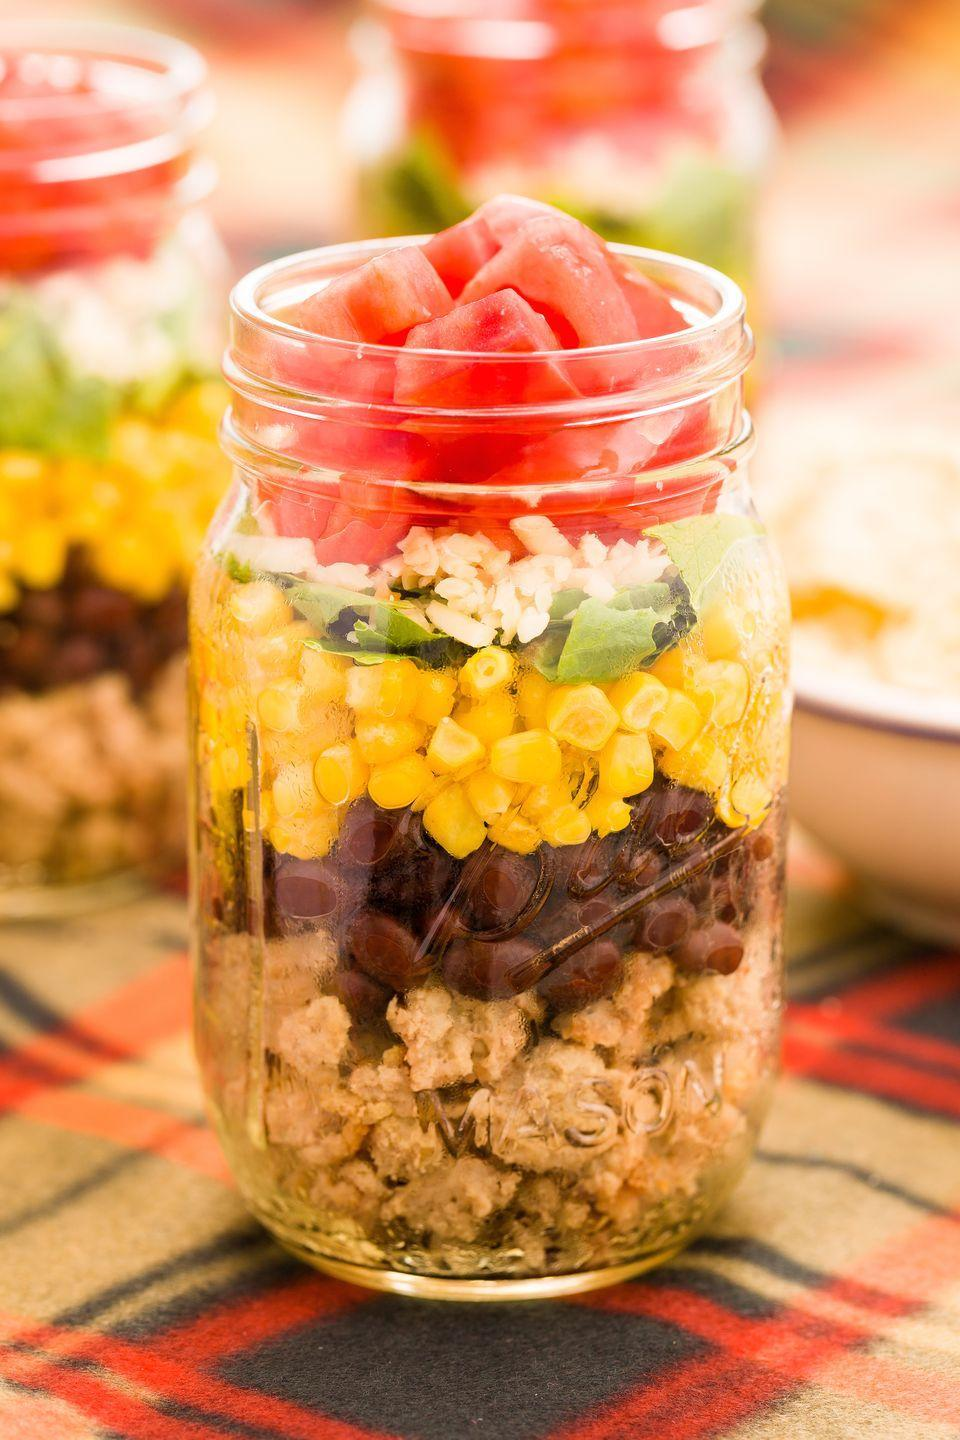 """<p>Layers of ground turkey, black beans, corn, scallions, cheese, and tomatoes is the heartiest thing you can pack in a lunch box.</p><p>Get the recipe from <a href=""""/cooking/recipe-ideas/recipes/a43747/taco-salad-in-a-jar-recipe/"""" data-ylk=""""slk:Delish"""" class=""""link rapid-noclick-resp"""">Delish</a>.</p>"""